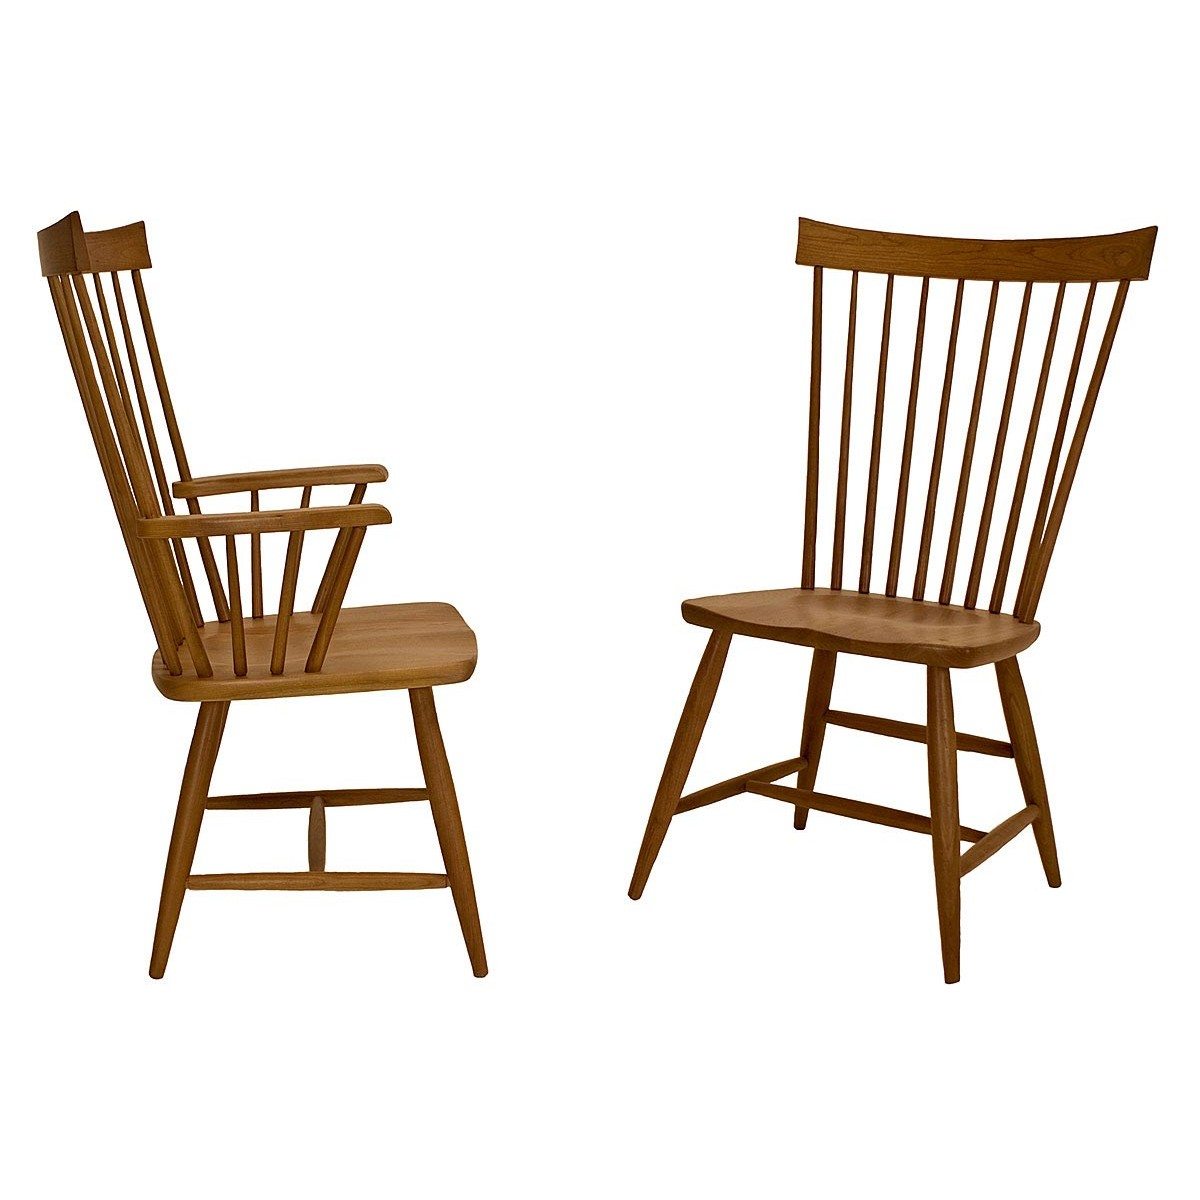 Lyndon Vermont Country Side Chair